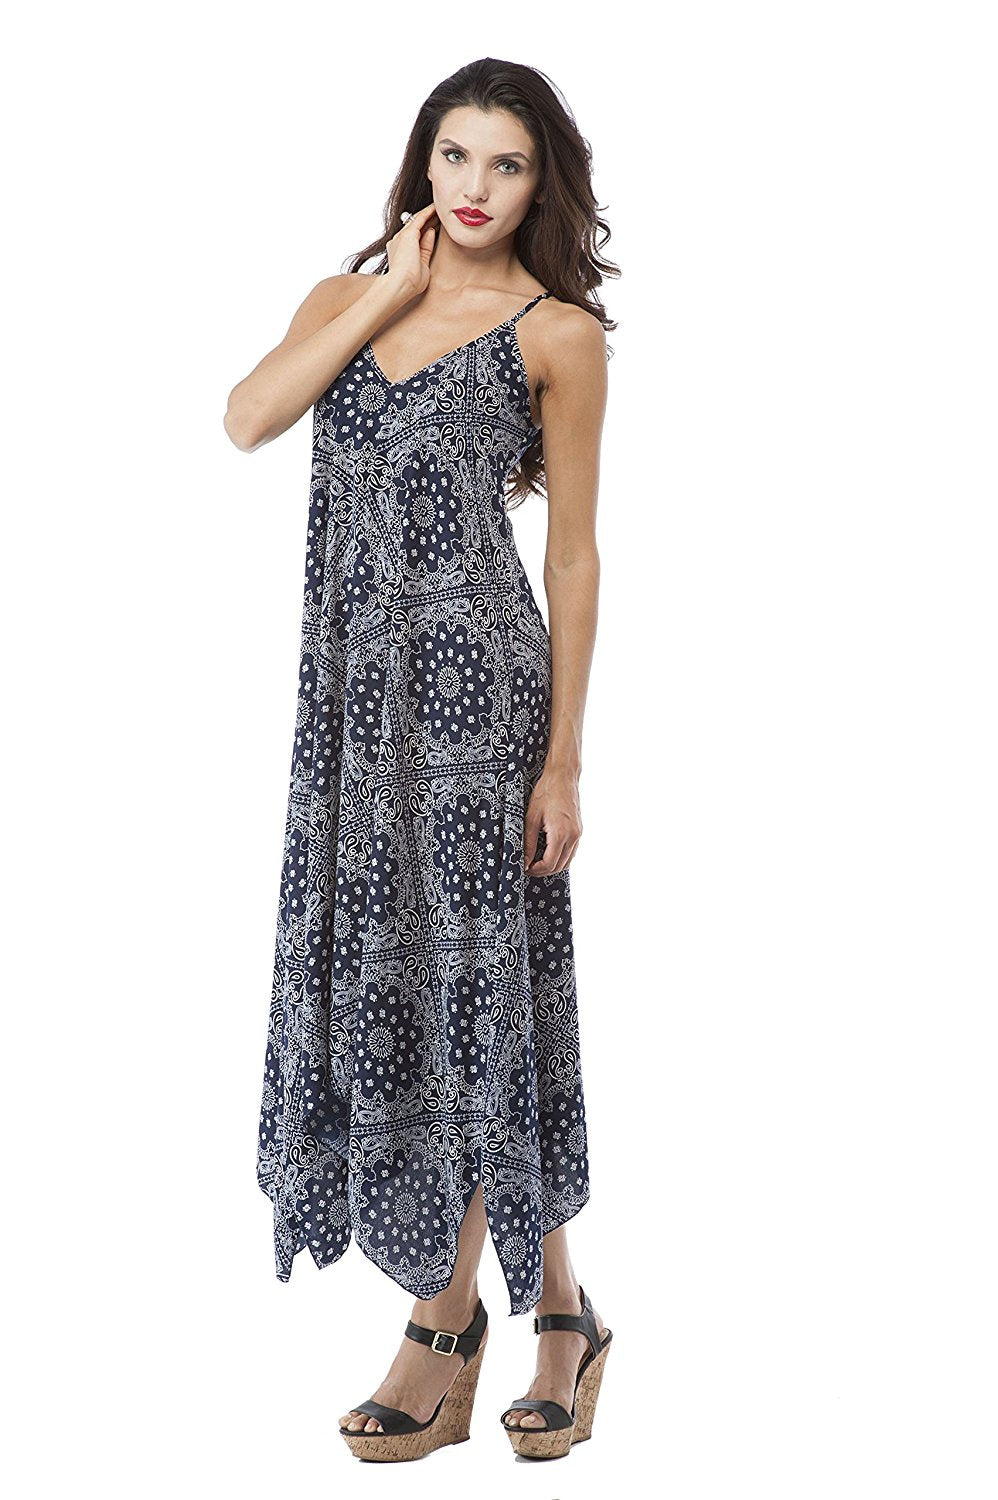 Paisley Print Spaghetti Strap Dress